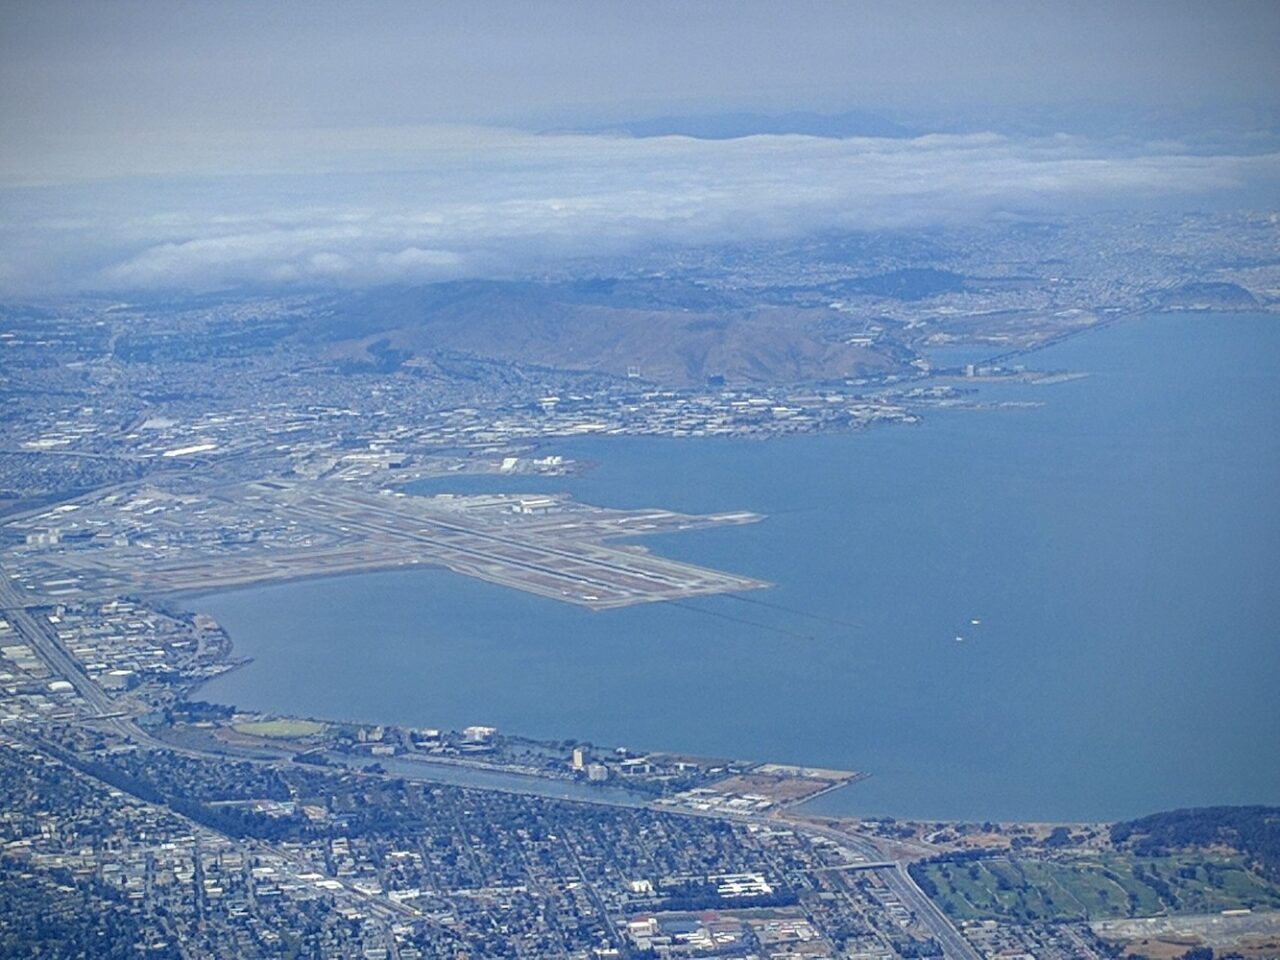 D – Entering the San Francisco harbor and watching the big birds land side by side at SFO Airport